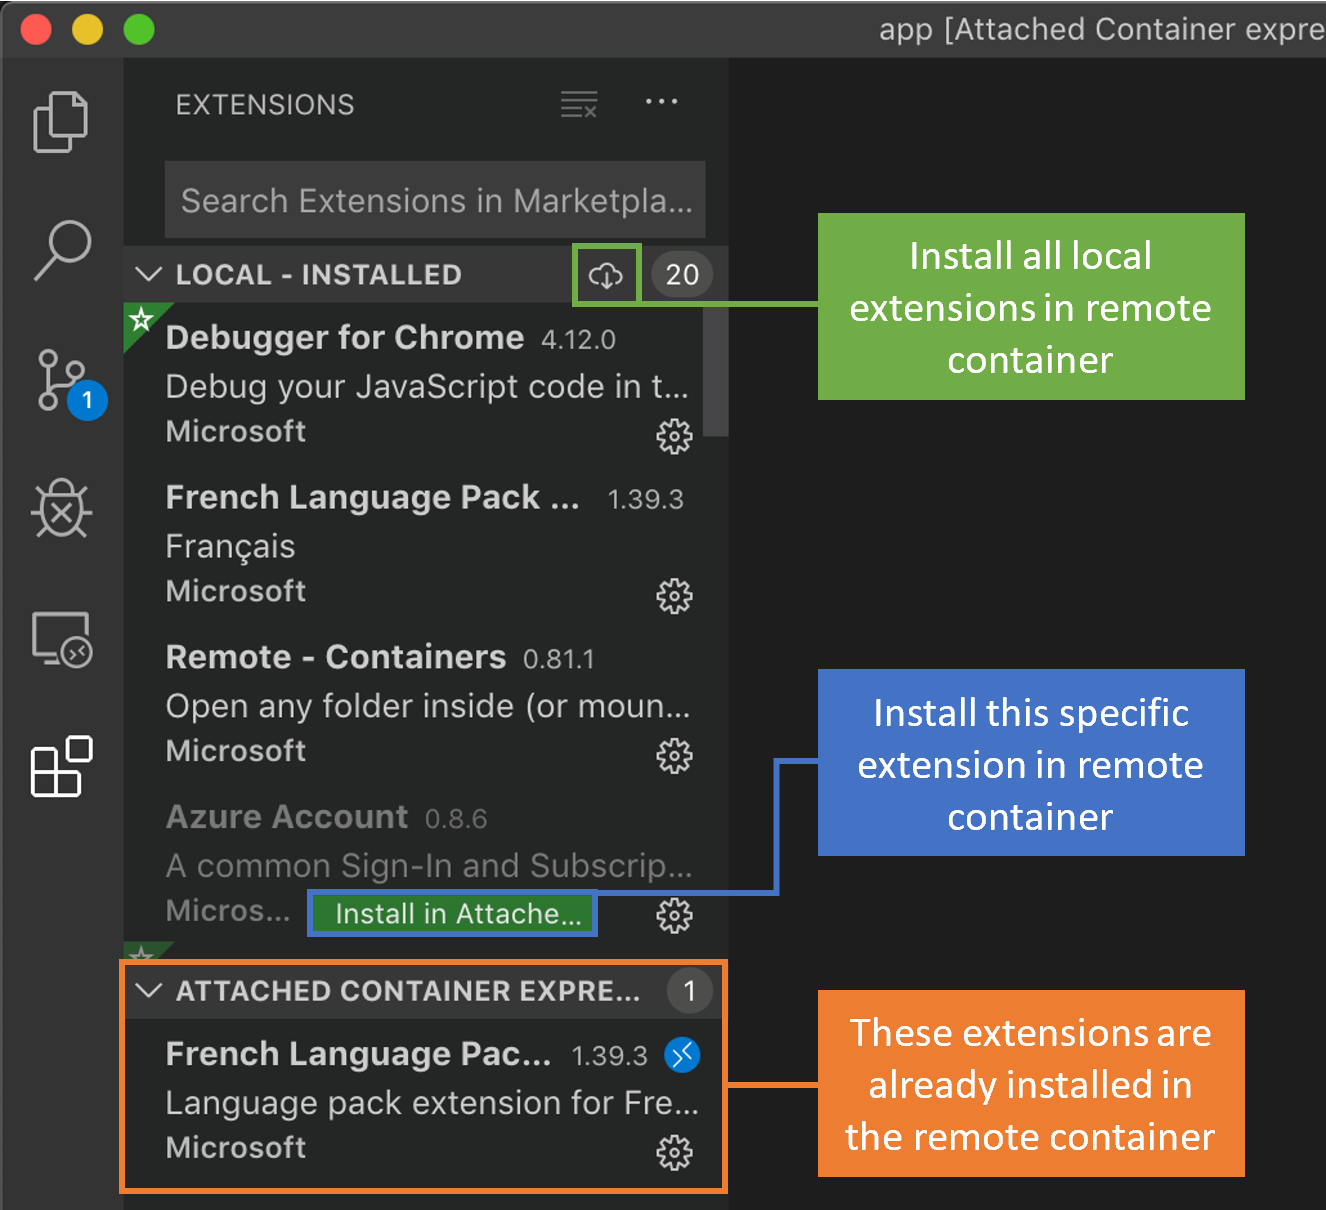 Remote Extensions view